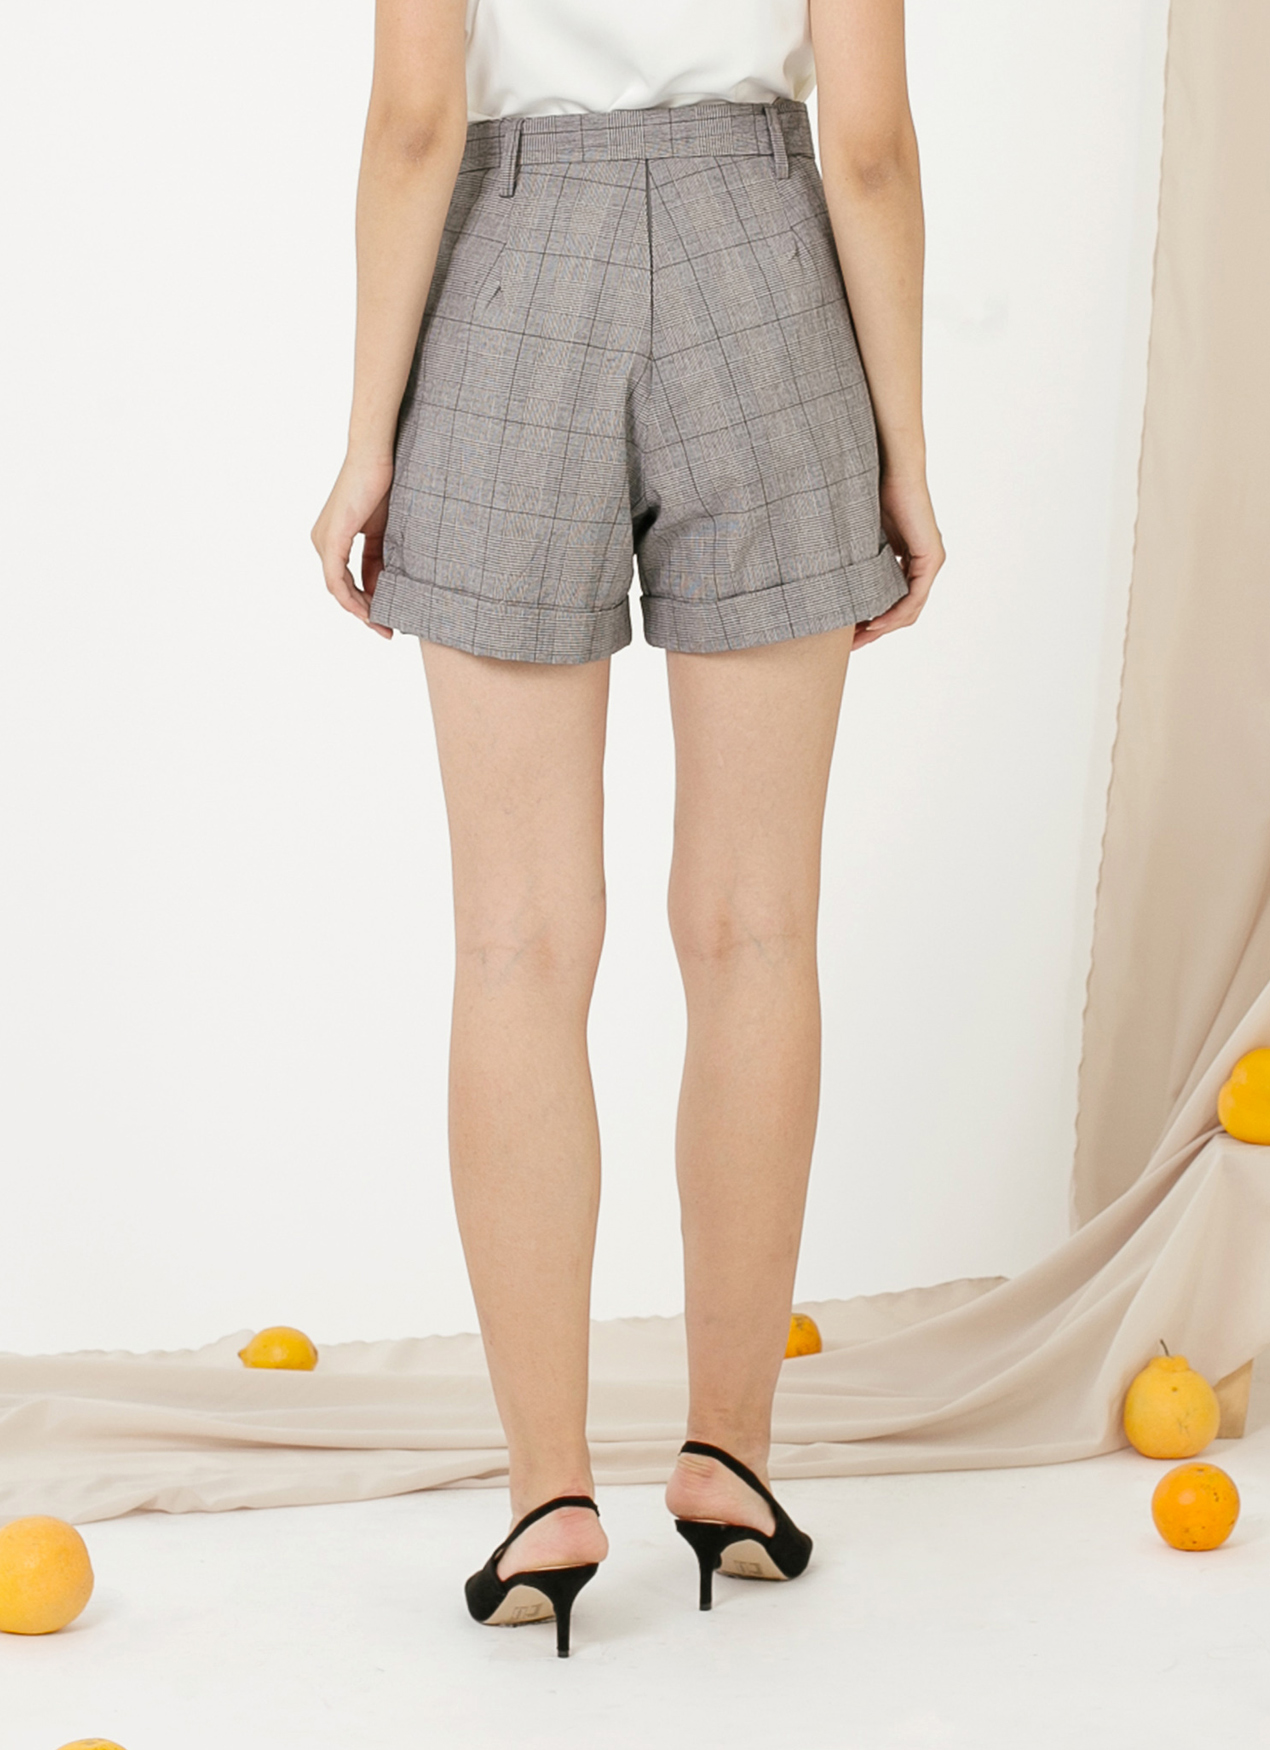 CLOTH INC Dorene Shorts - Checkered Gray